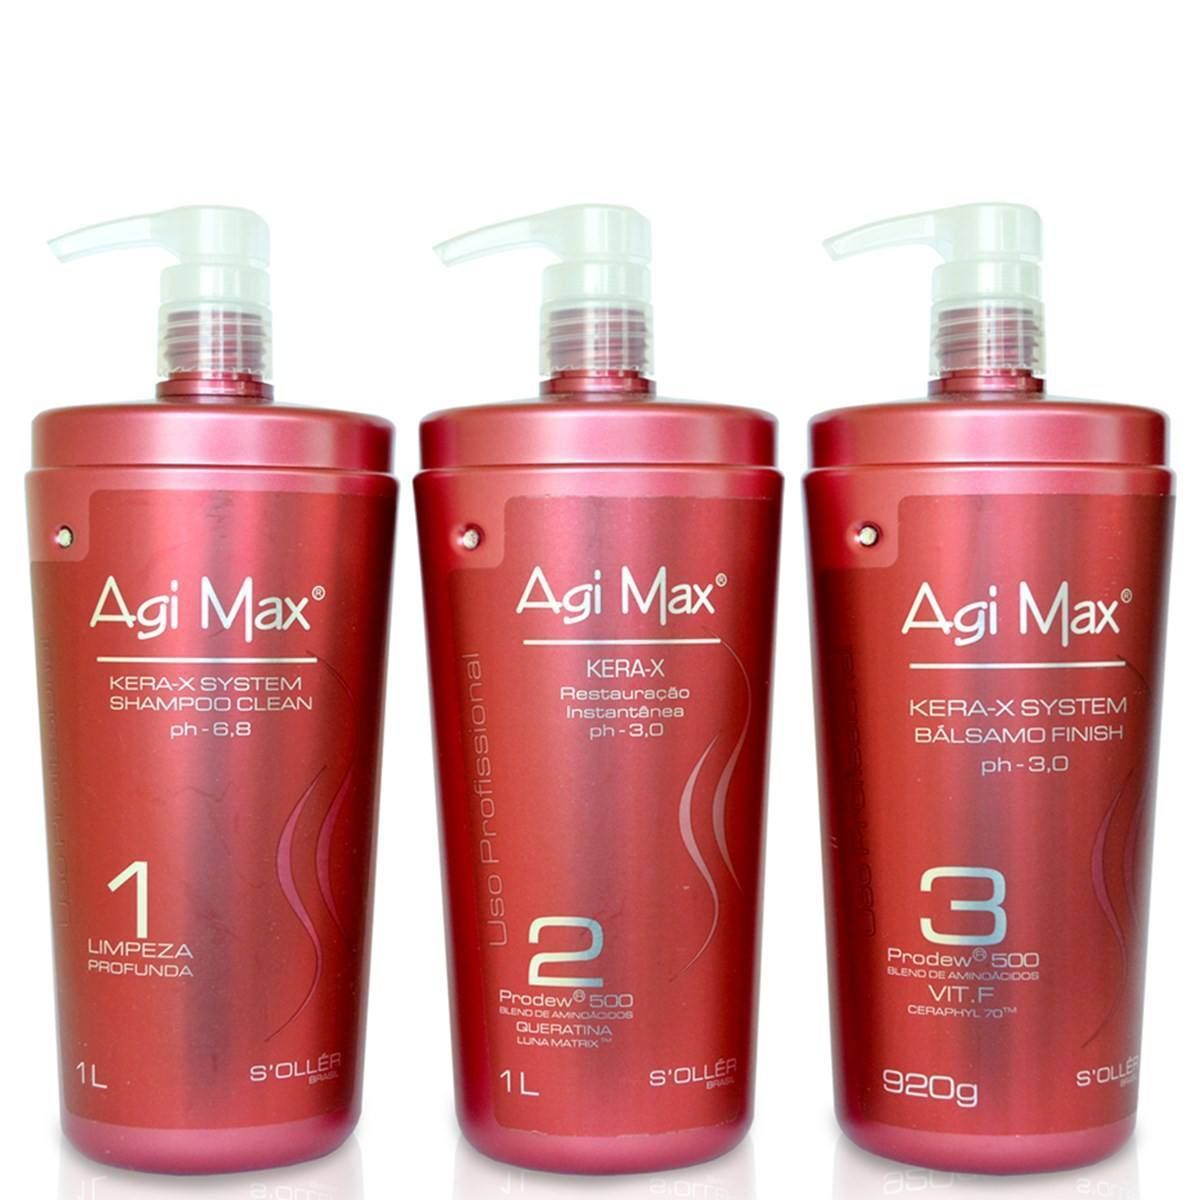 Soller Brazilian Keratin Treatment Agi Max Kera-X System Progressive Brush Kit 3x1Lt - S'ollér